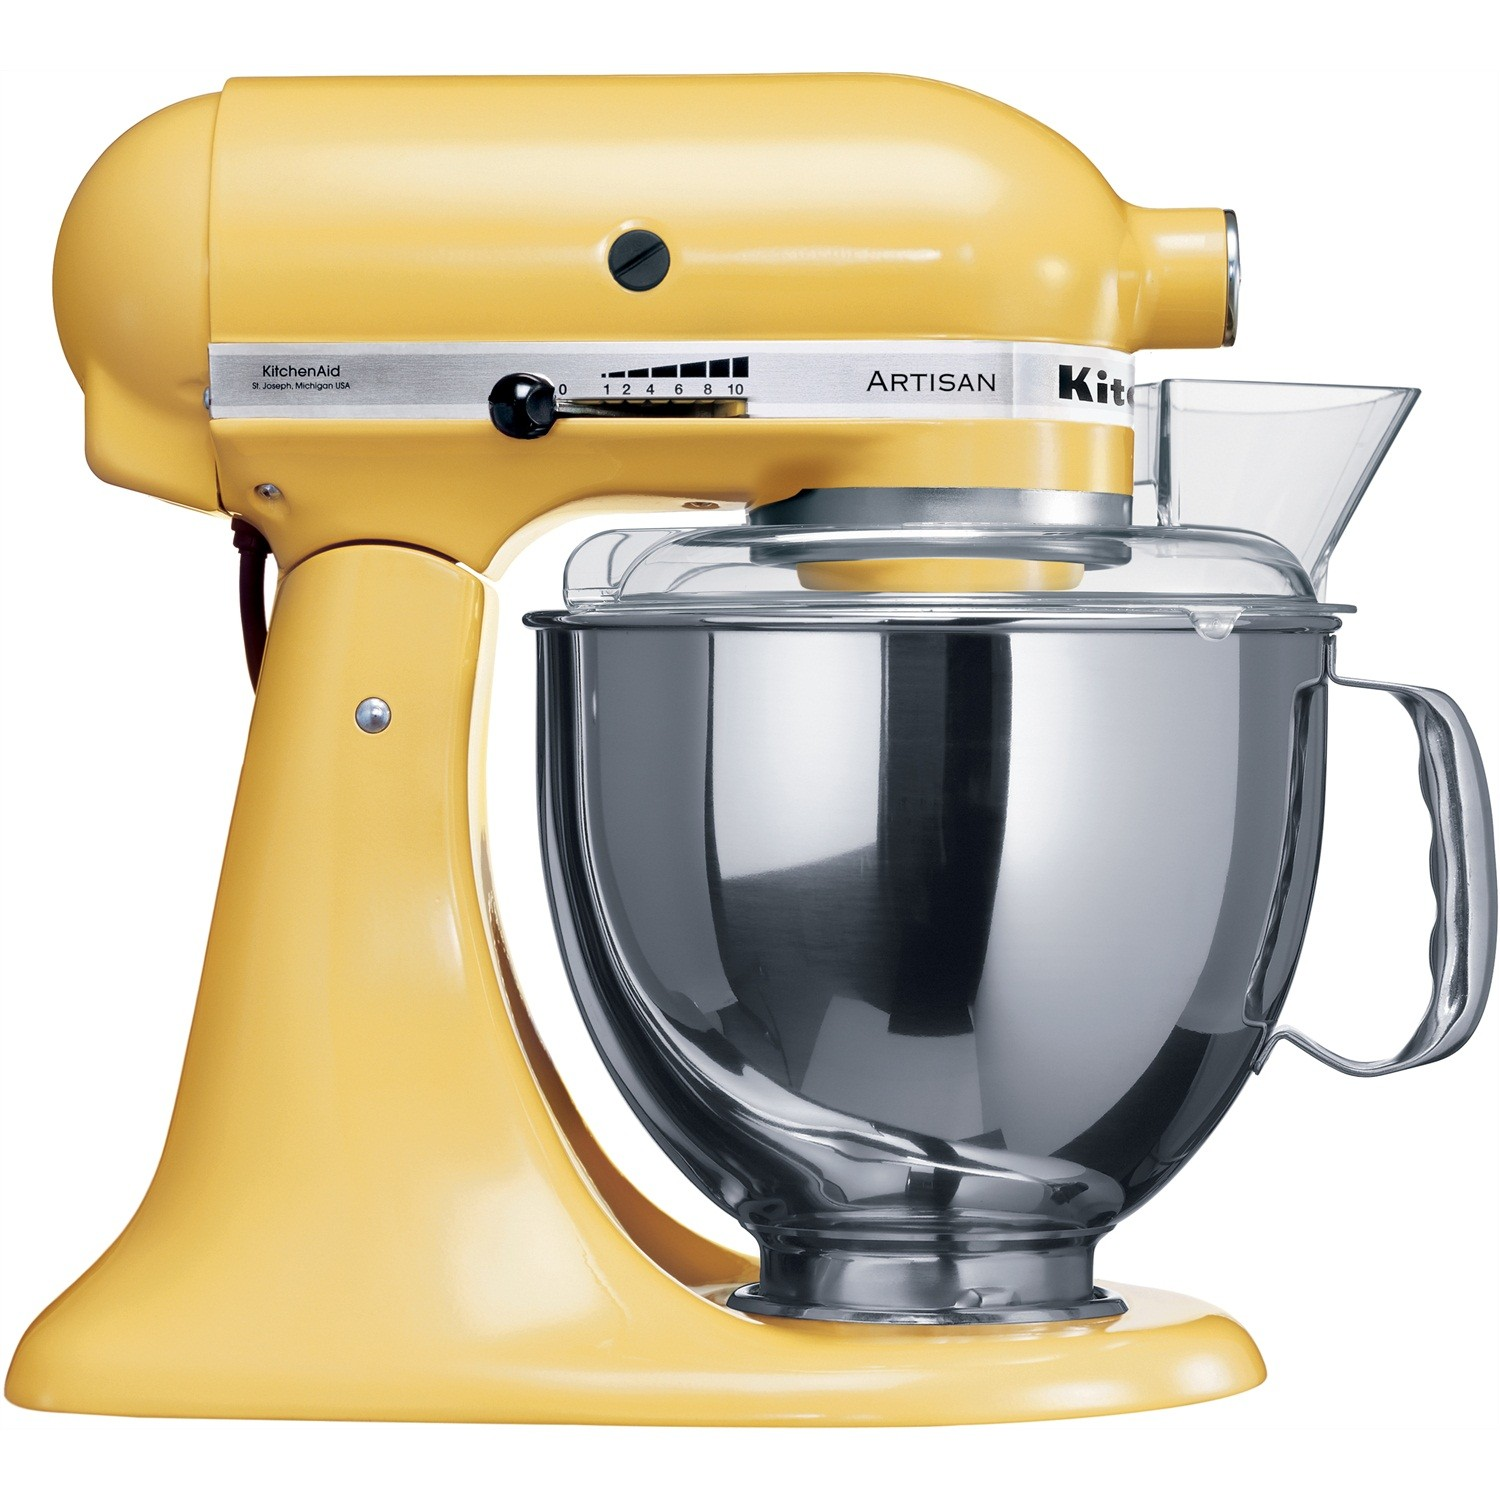 KitchenAid Artisan Mixer 5KSM150PS pastelgeel